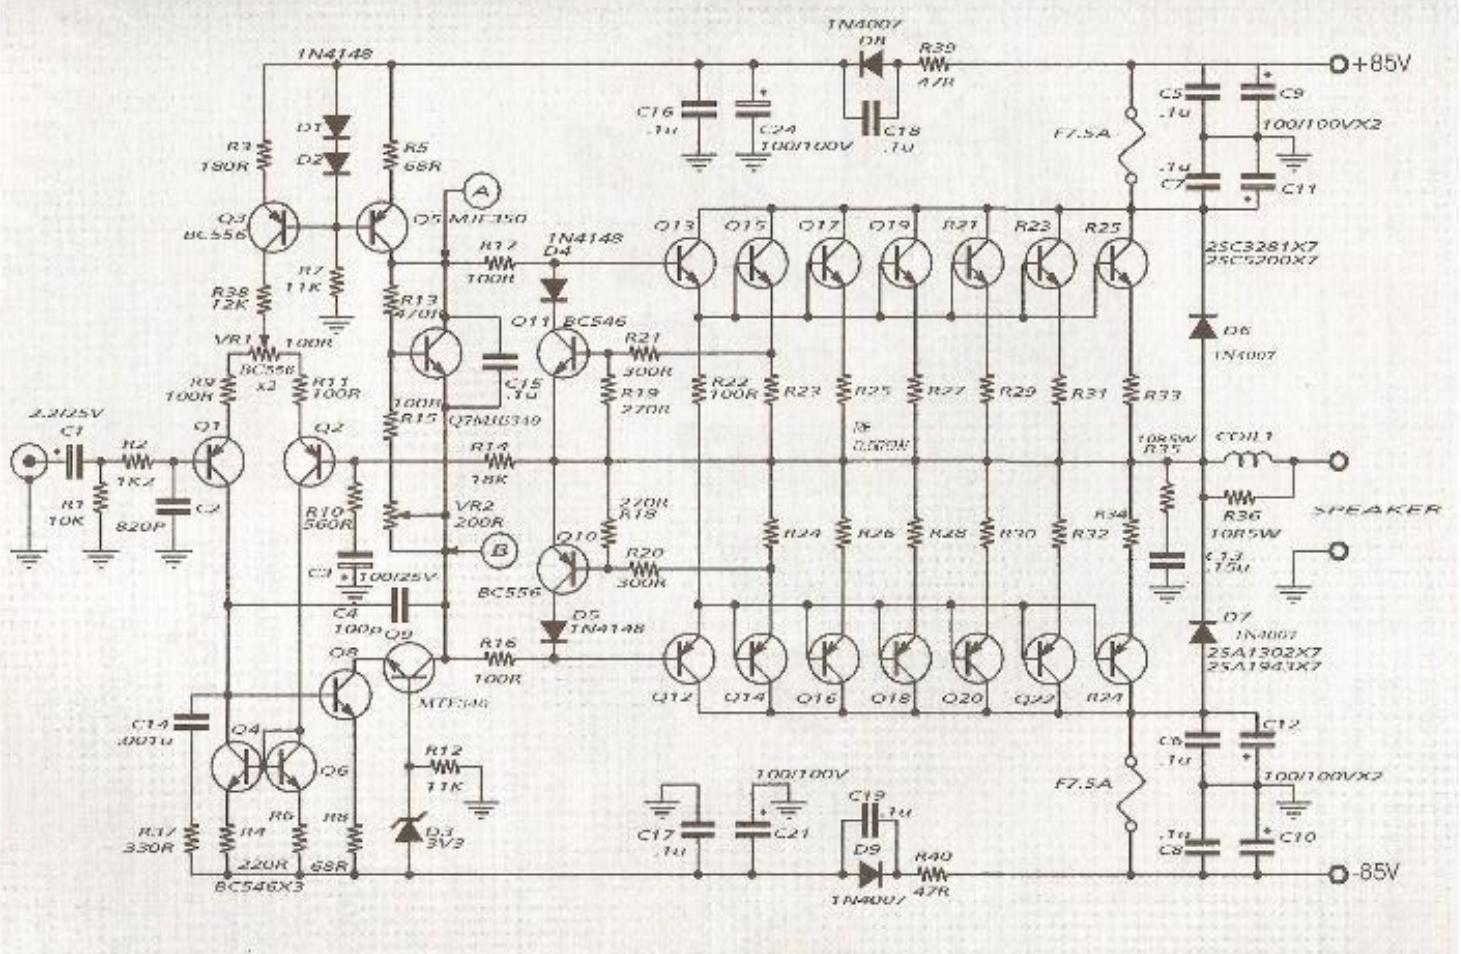 1000 Watts Power Amplifier Schematic Diagrams